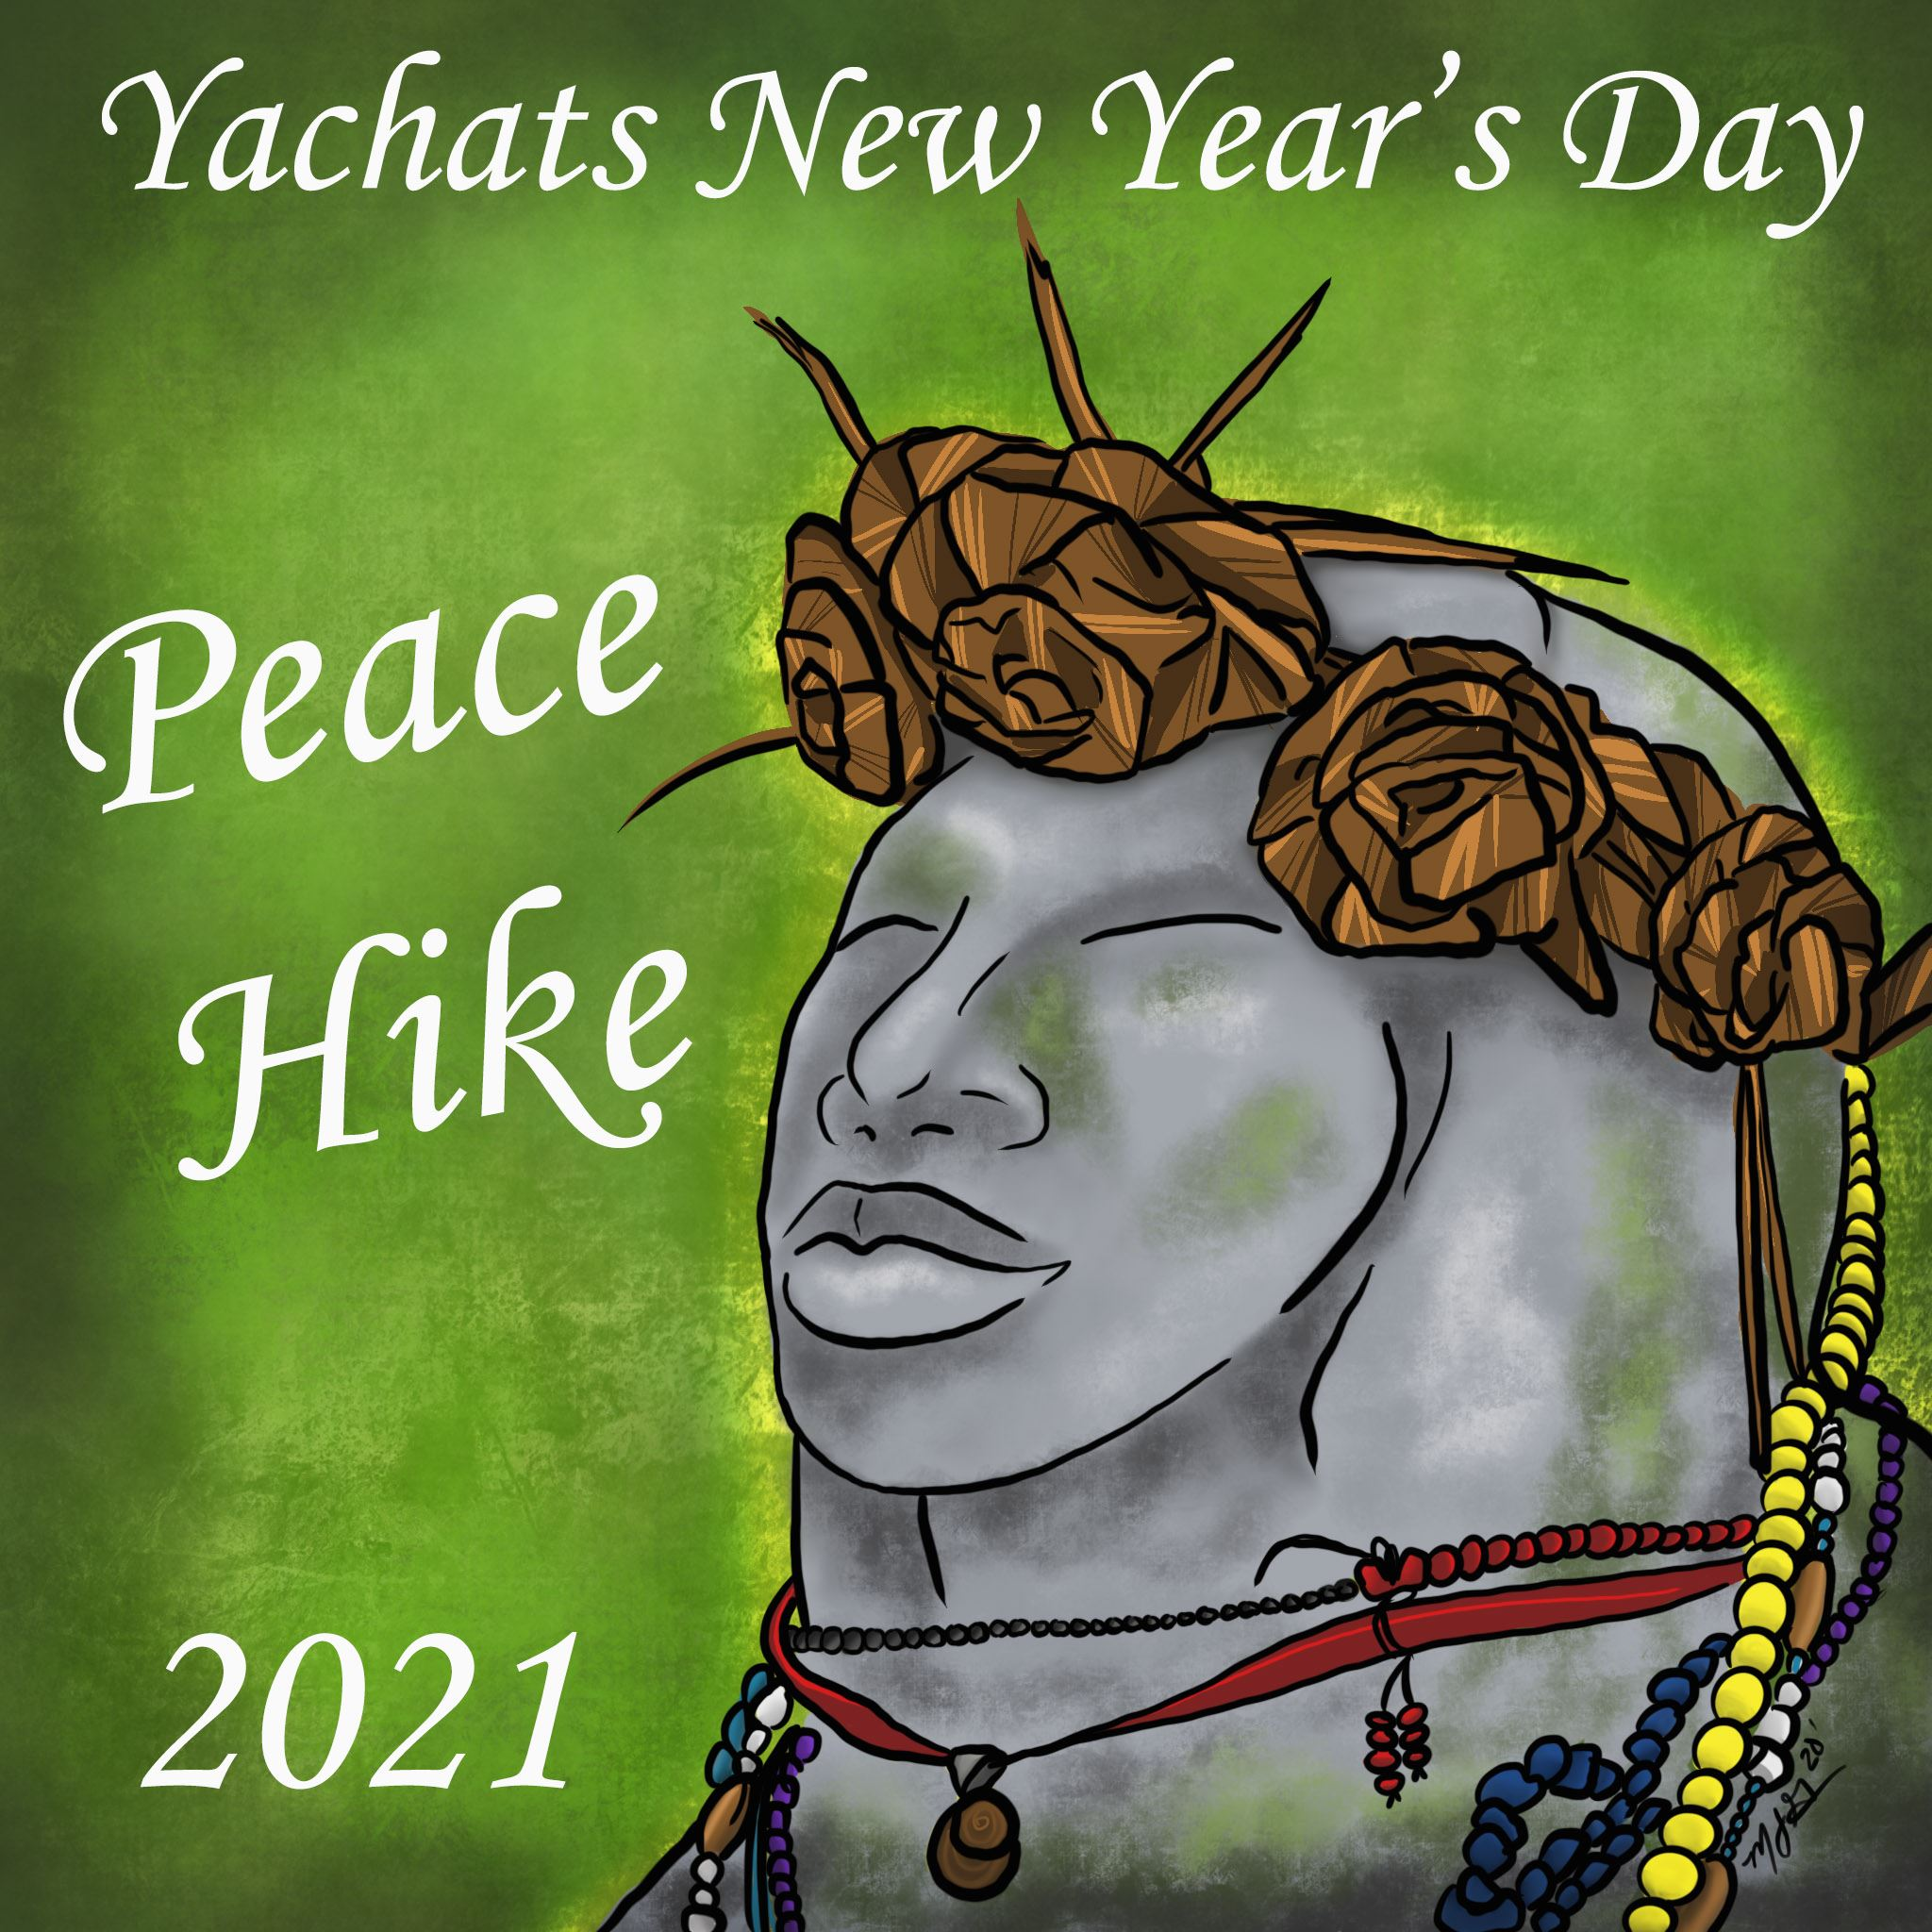 yachats news years day peace hike 2021